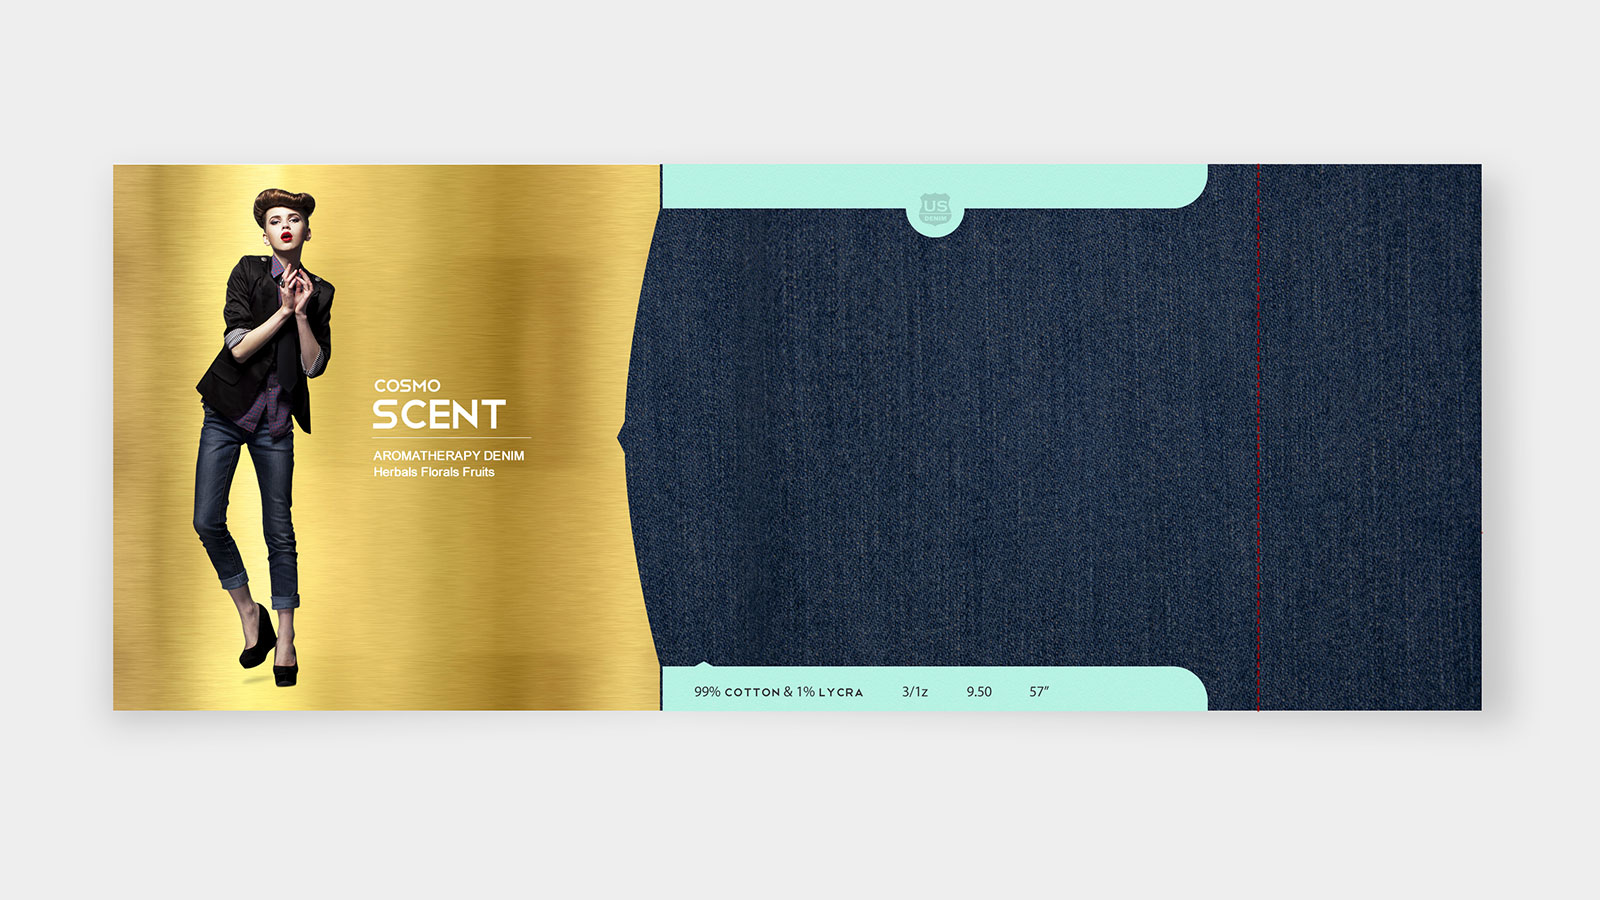 us-denim-graphic-brand-design-web-designer-hiline-lahore-pakistan-006